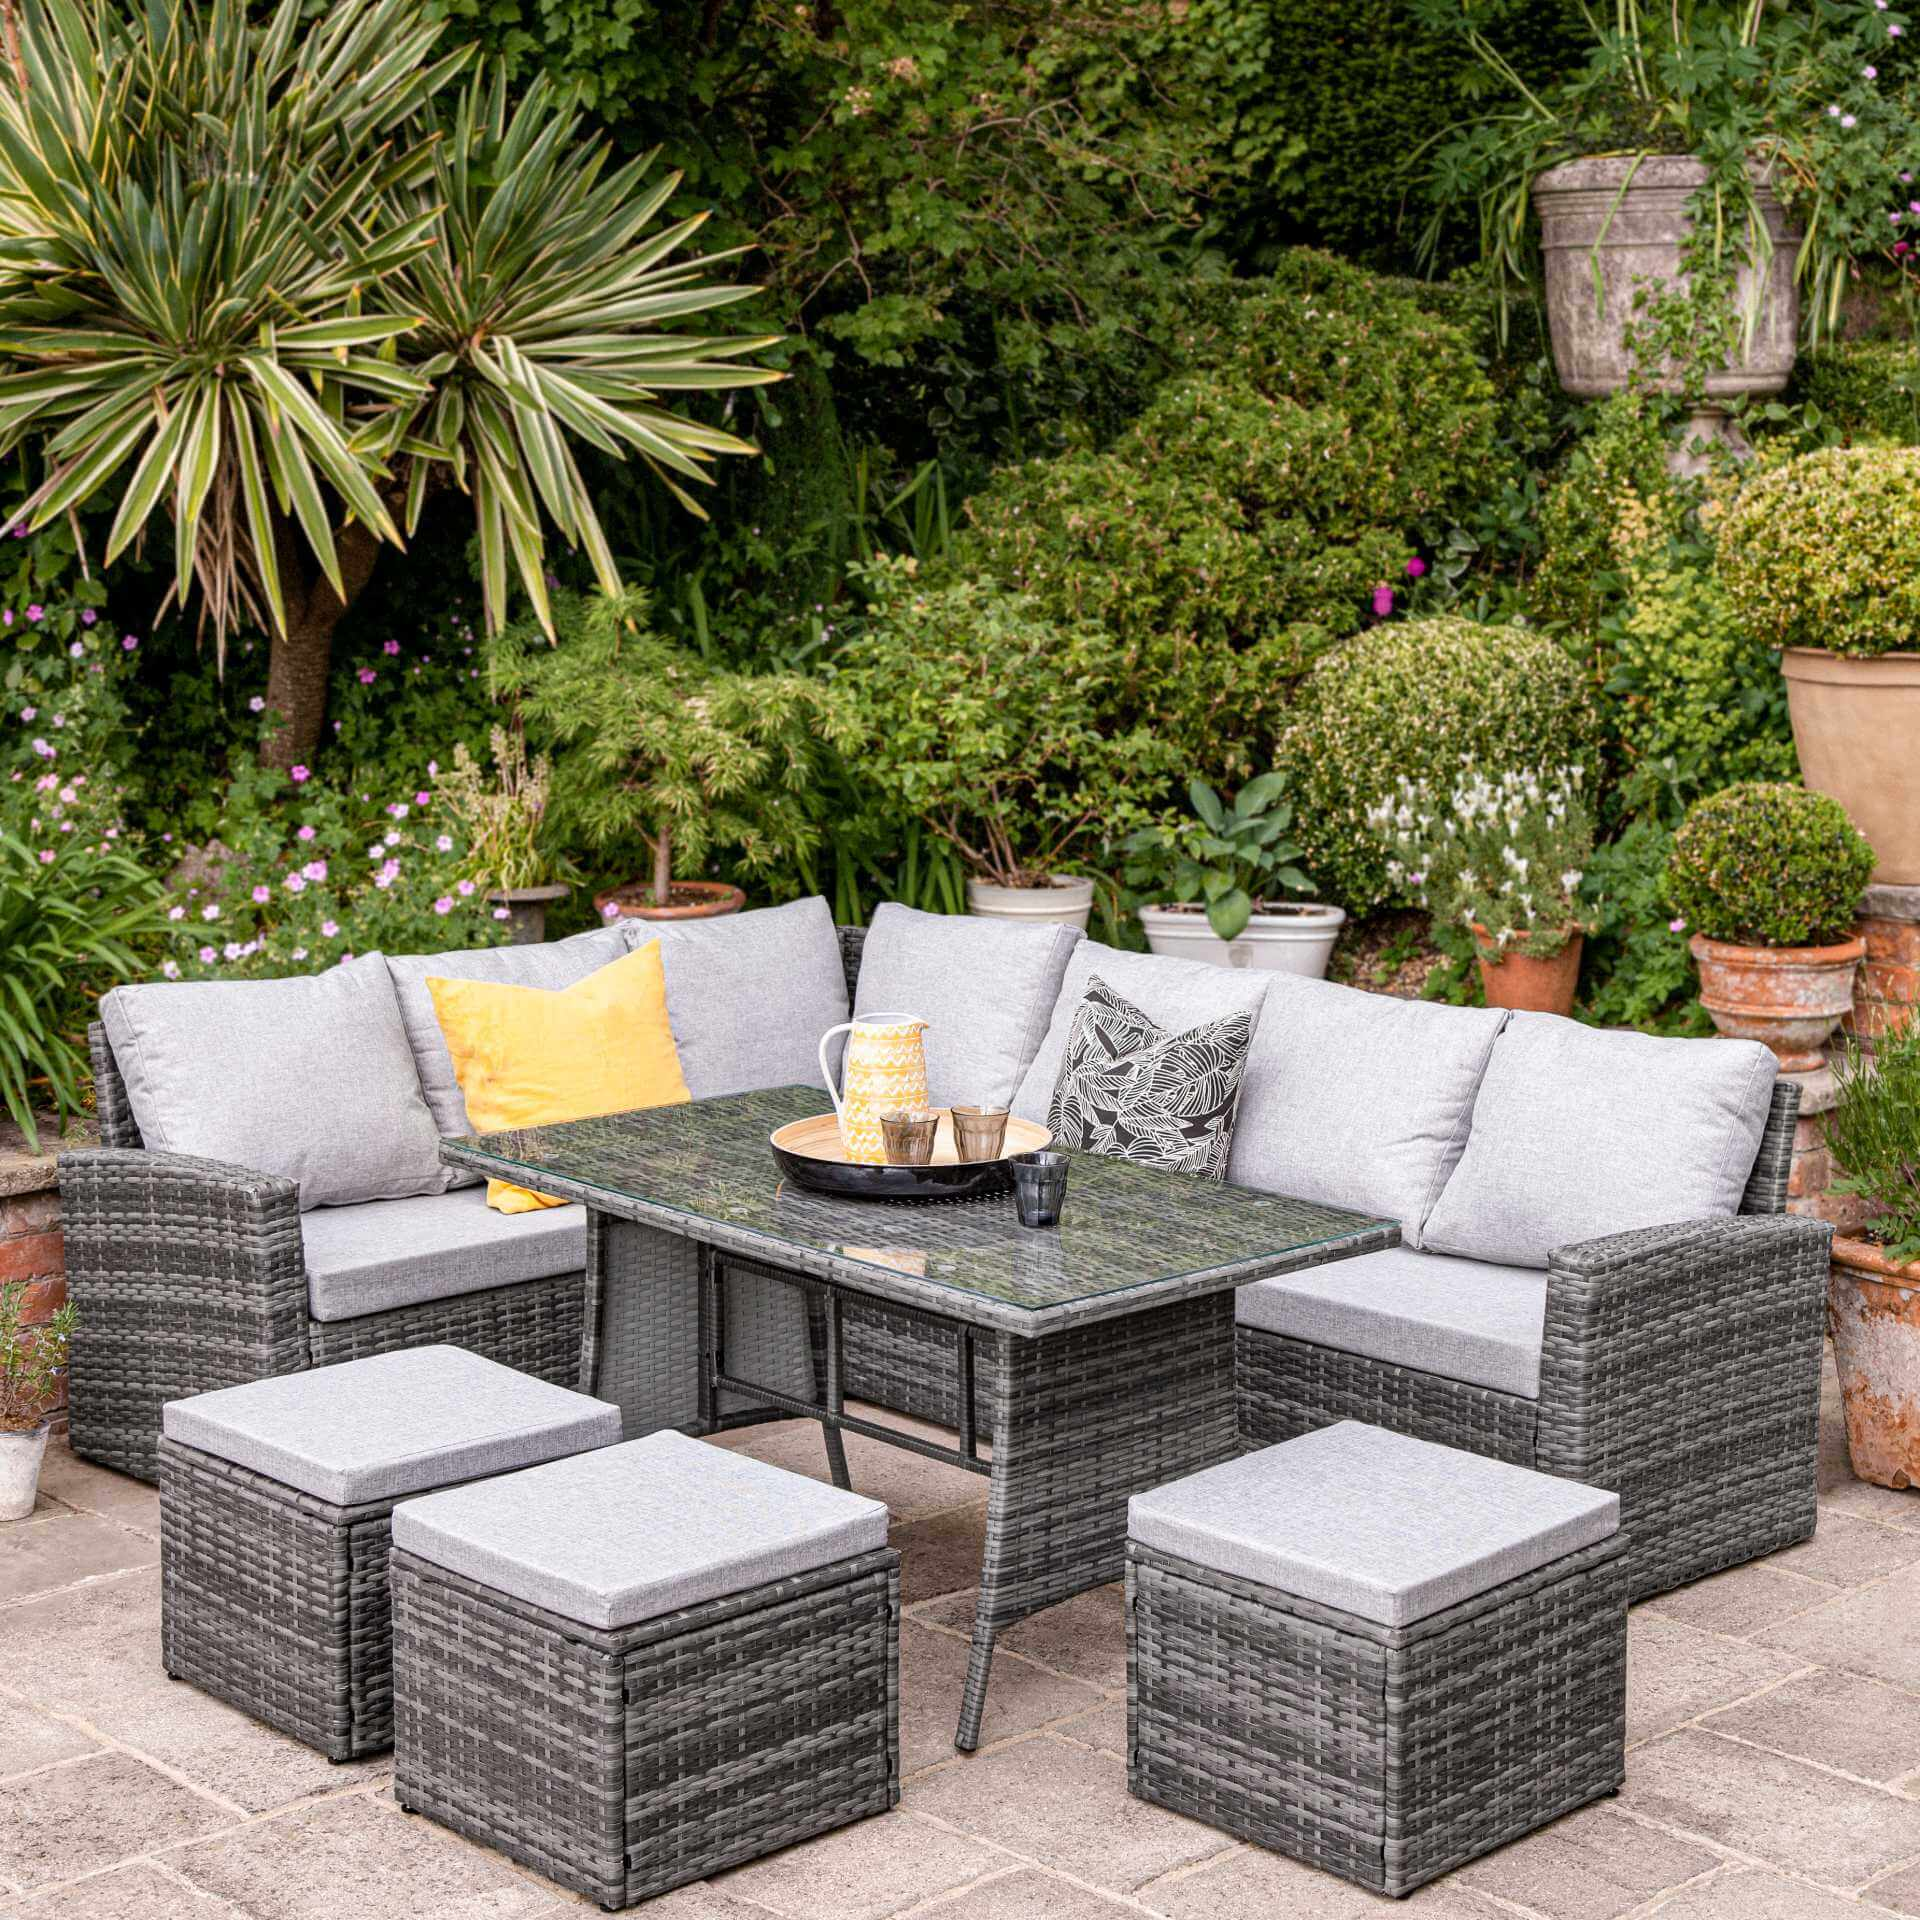 9 Seater Rattan Outdoor Corner Sofa Set - Grey Weave